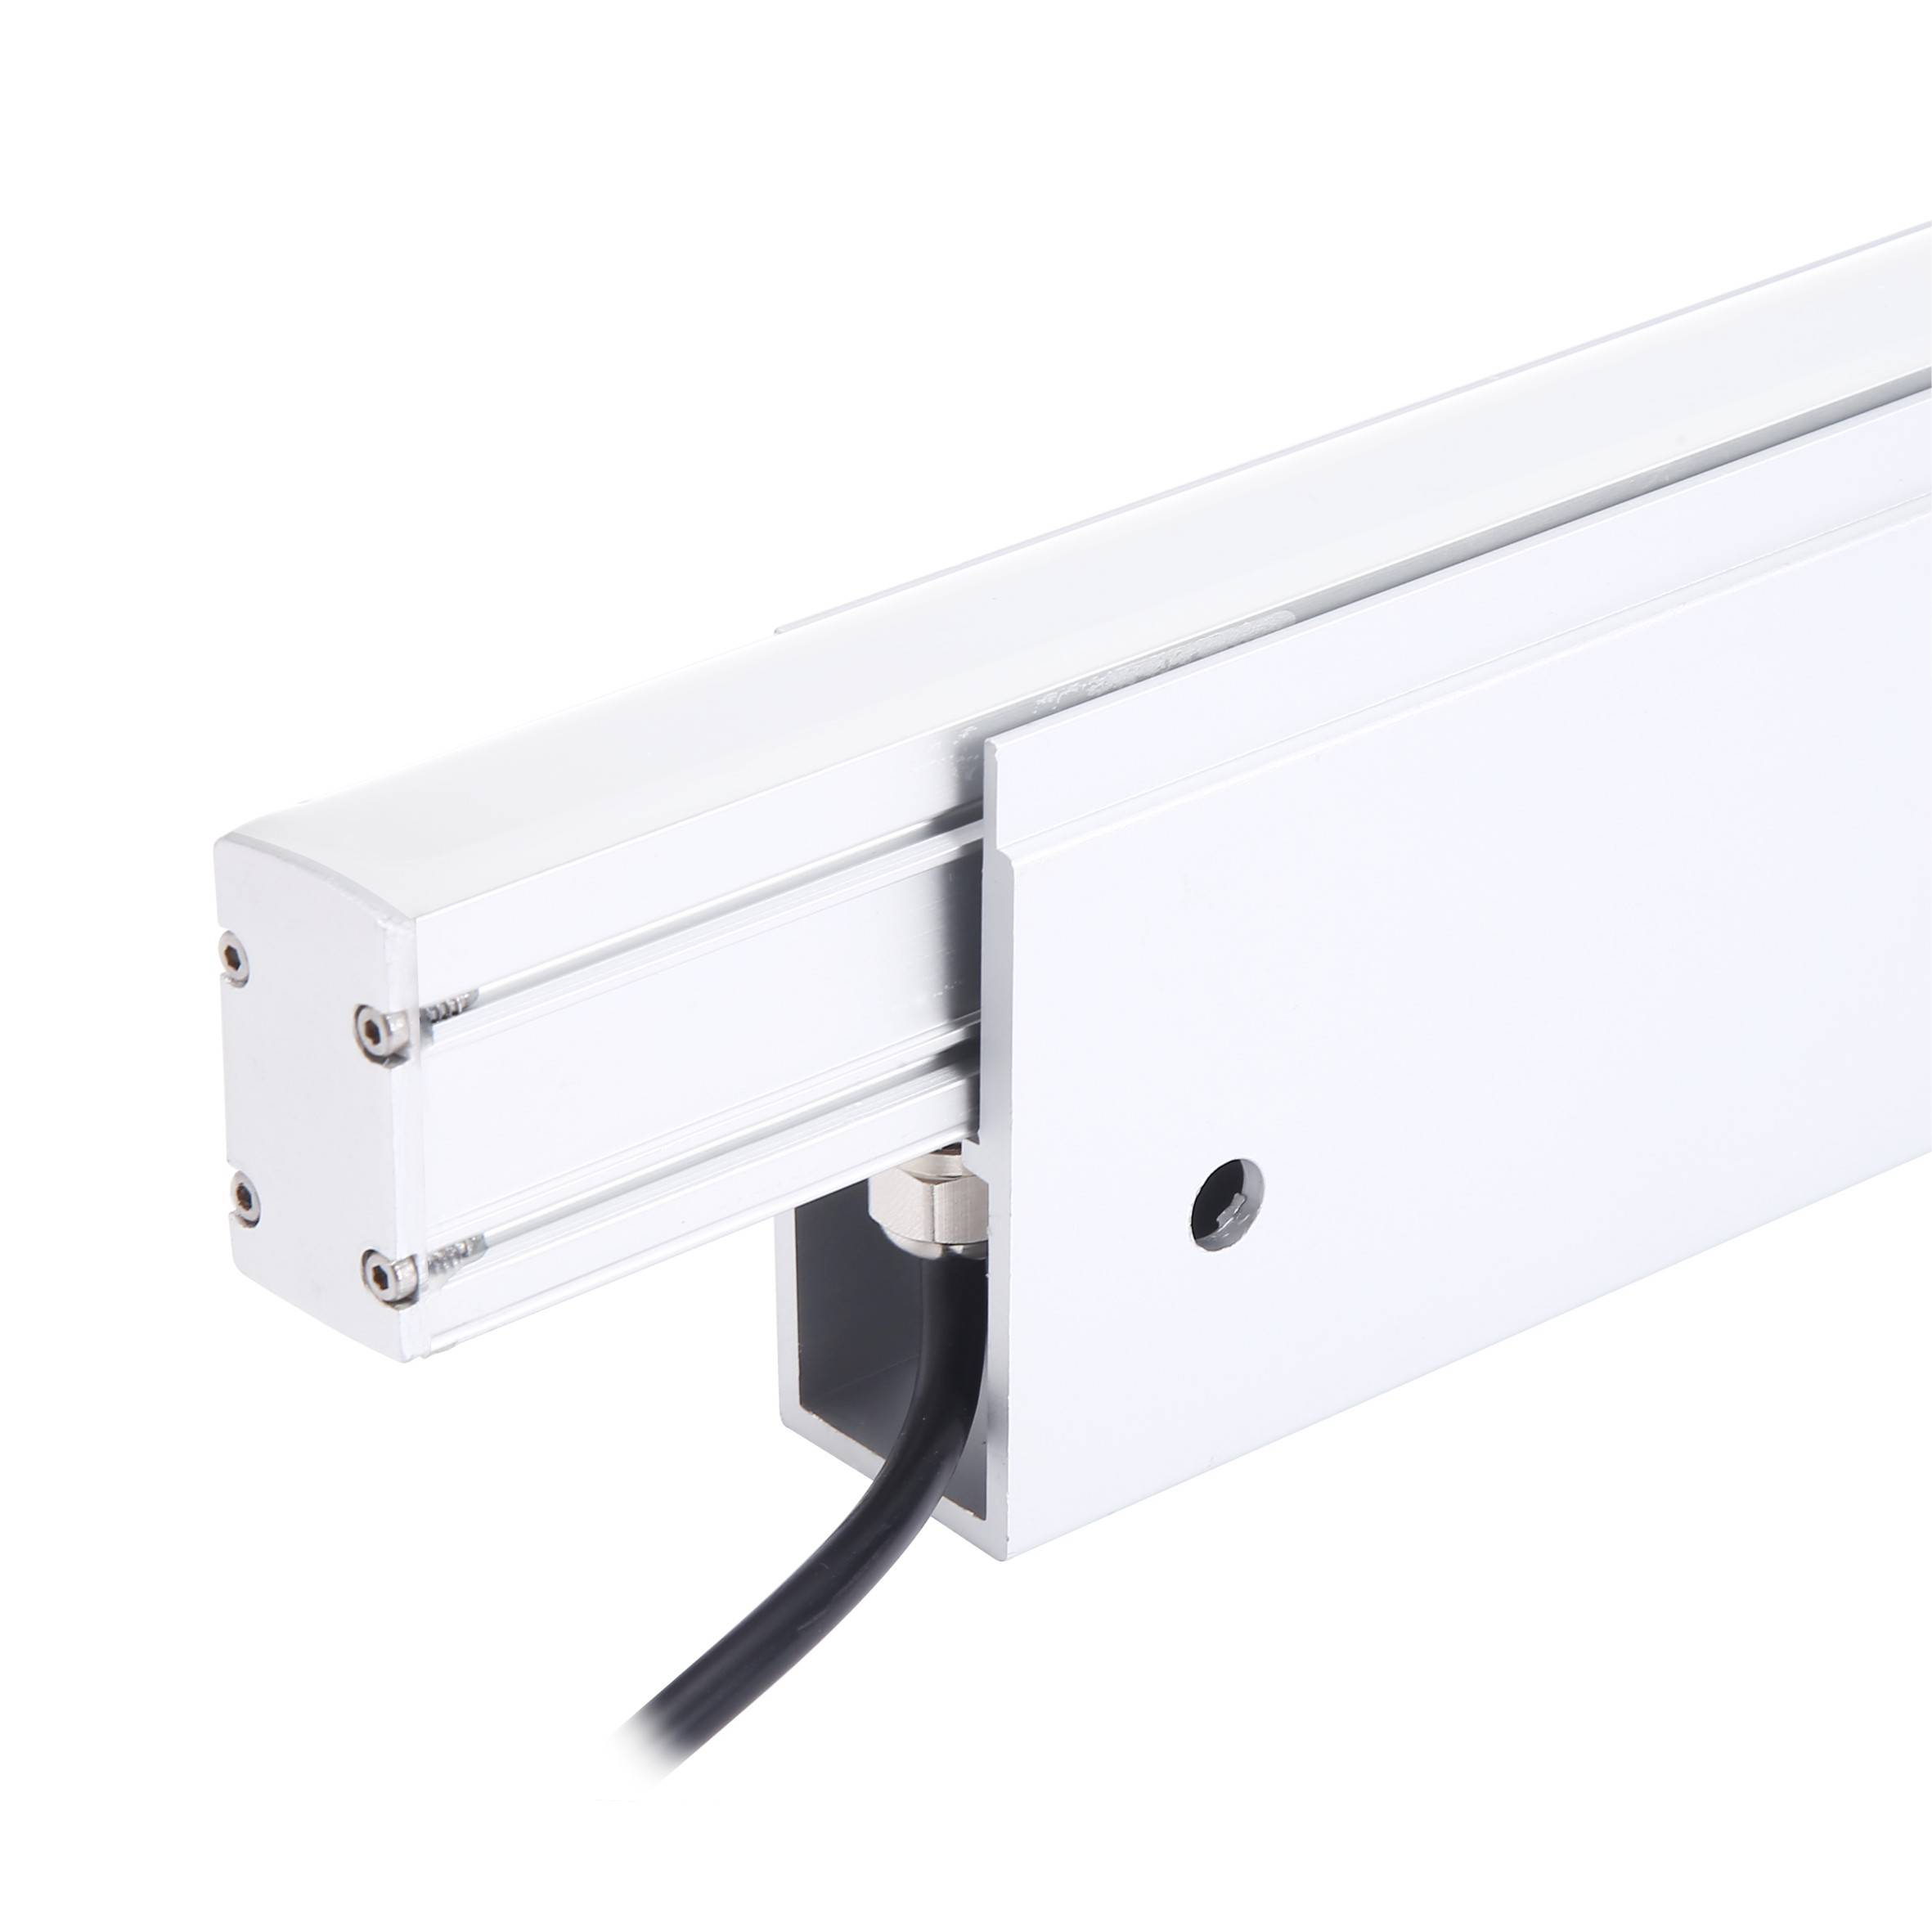 EFS Linear Light